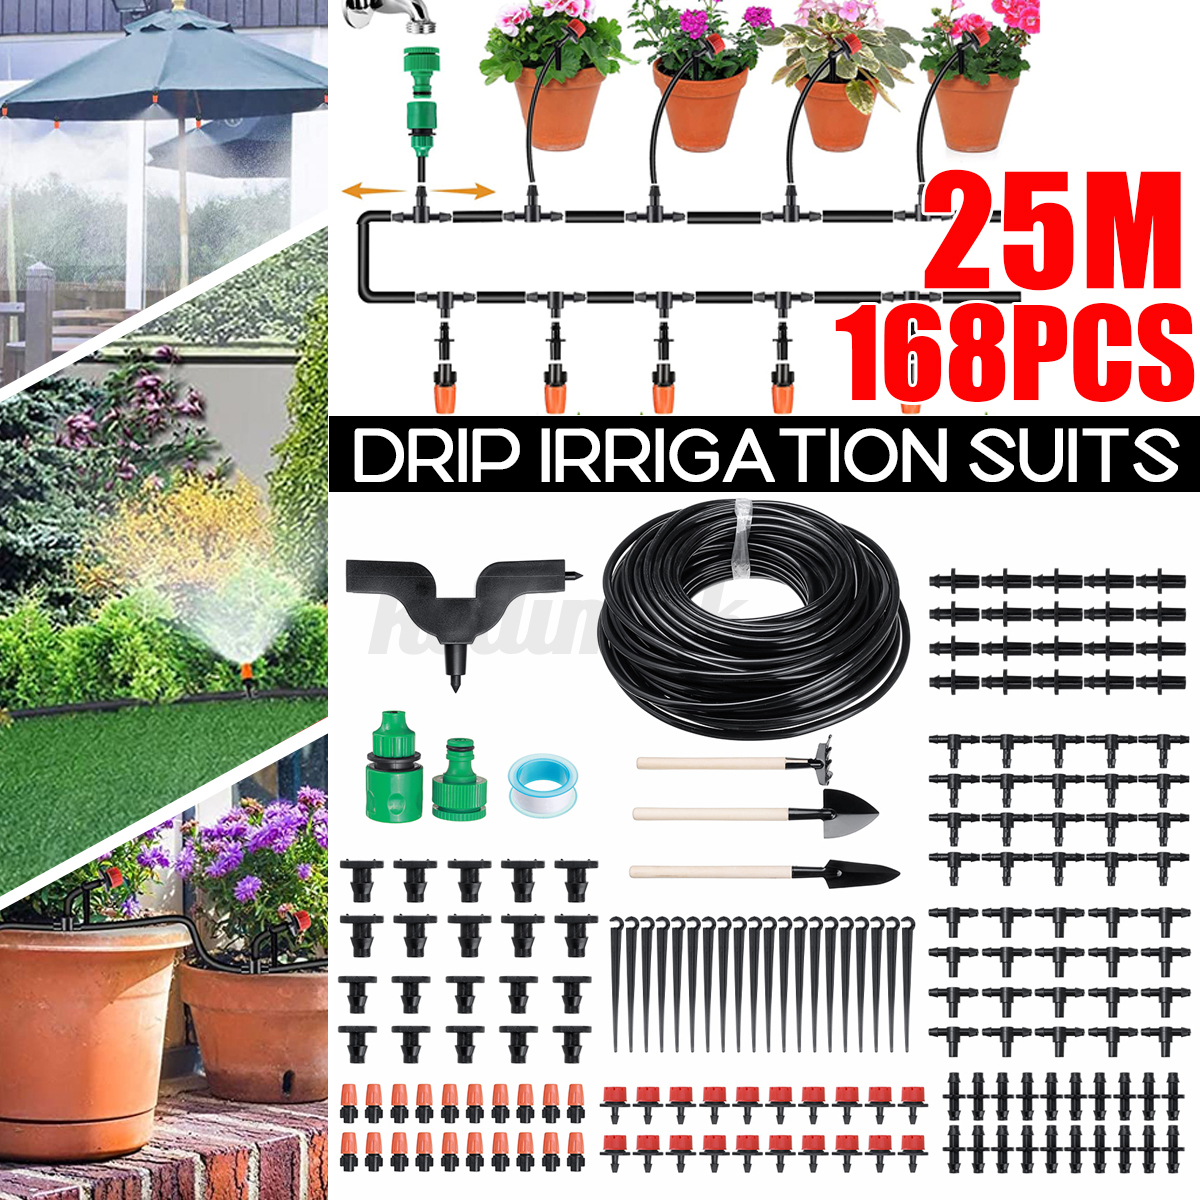 82Ft Hose Garden Irrigation System with Timer Plant Watering